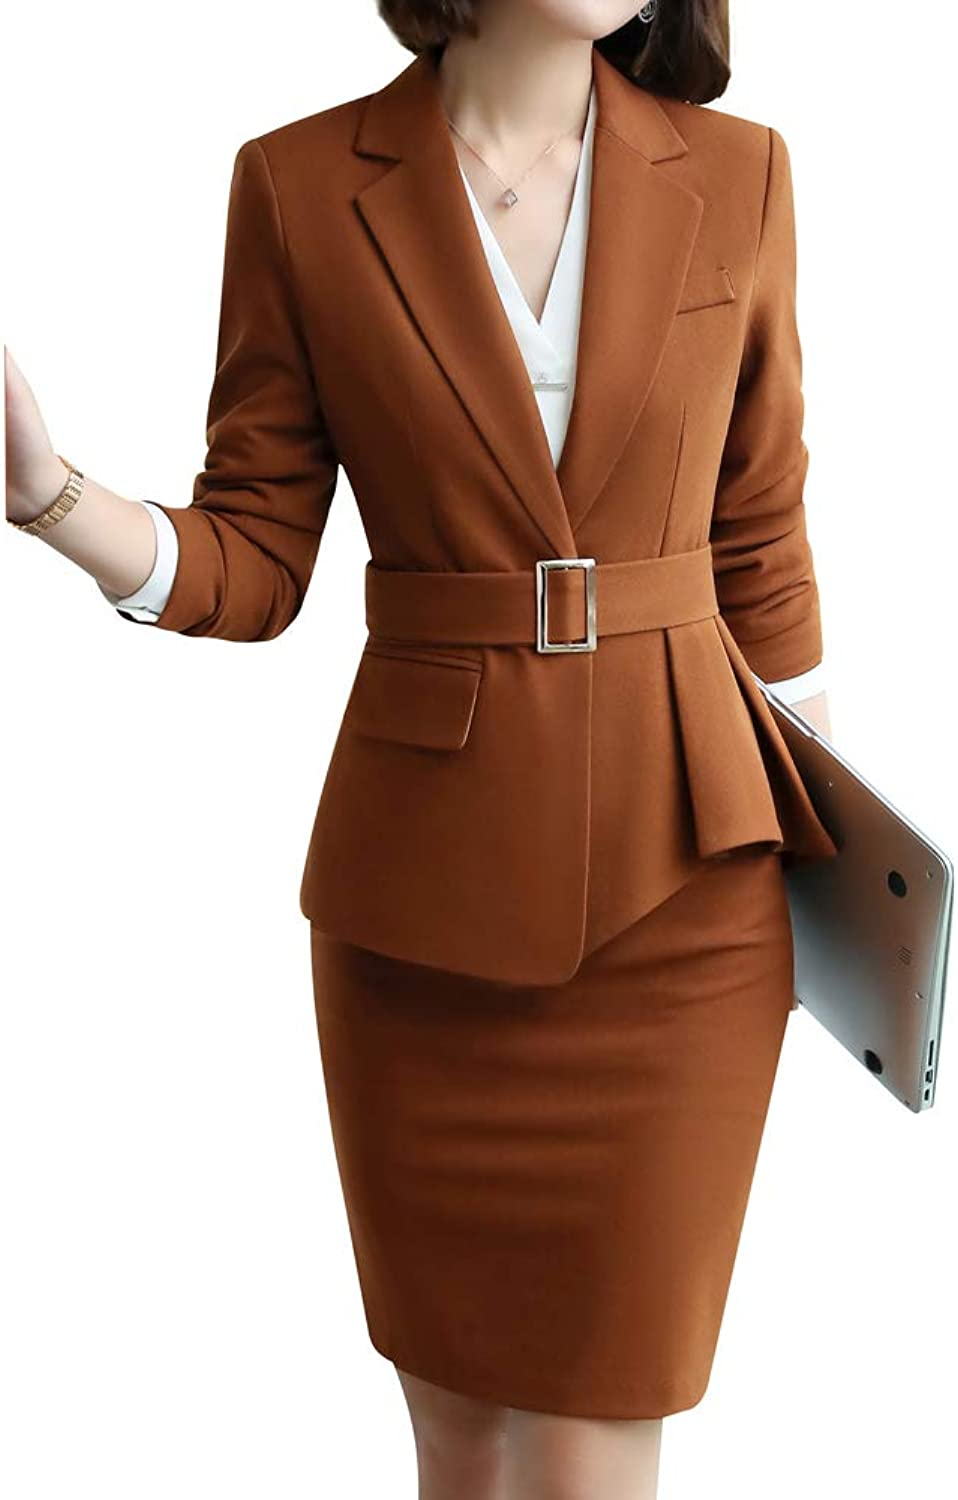 LISUEYNE Women's 2 Piece Slim Fit Blazer Suit Office Lady Business Suit Set Blazer Jacket,Pant Skirt